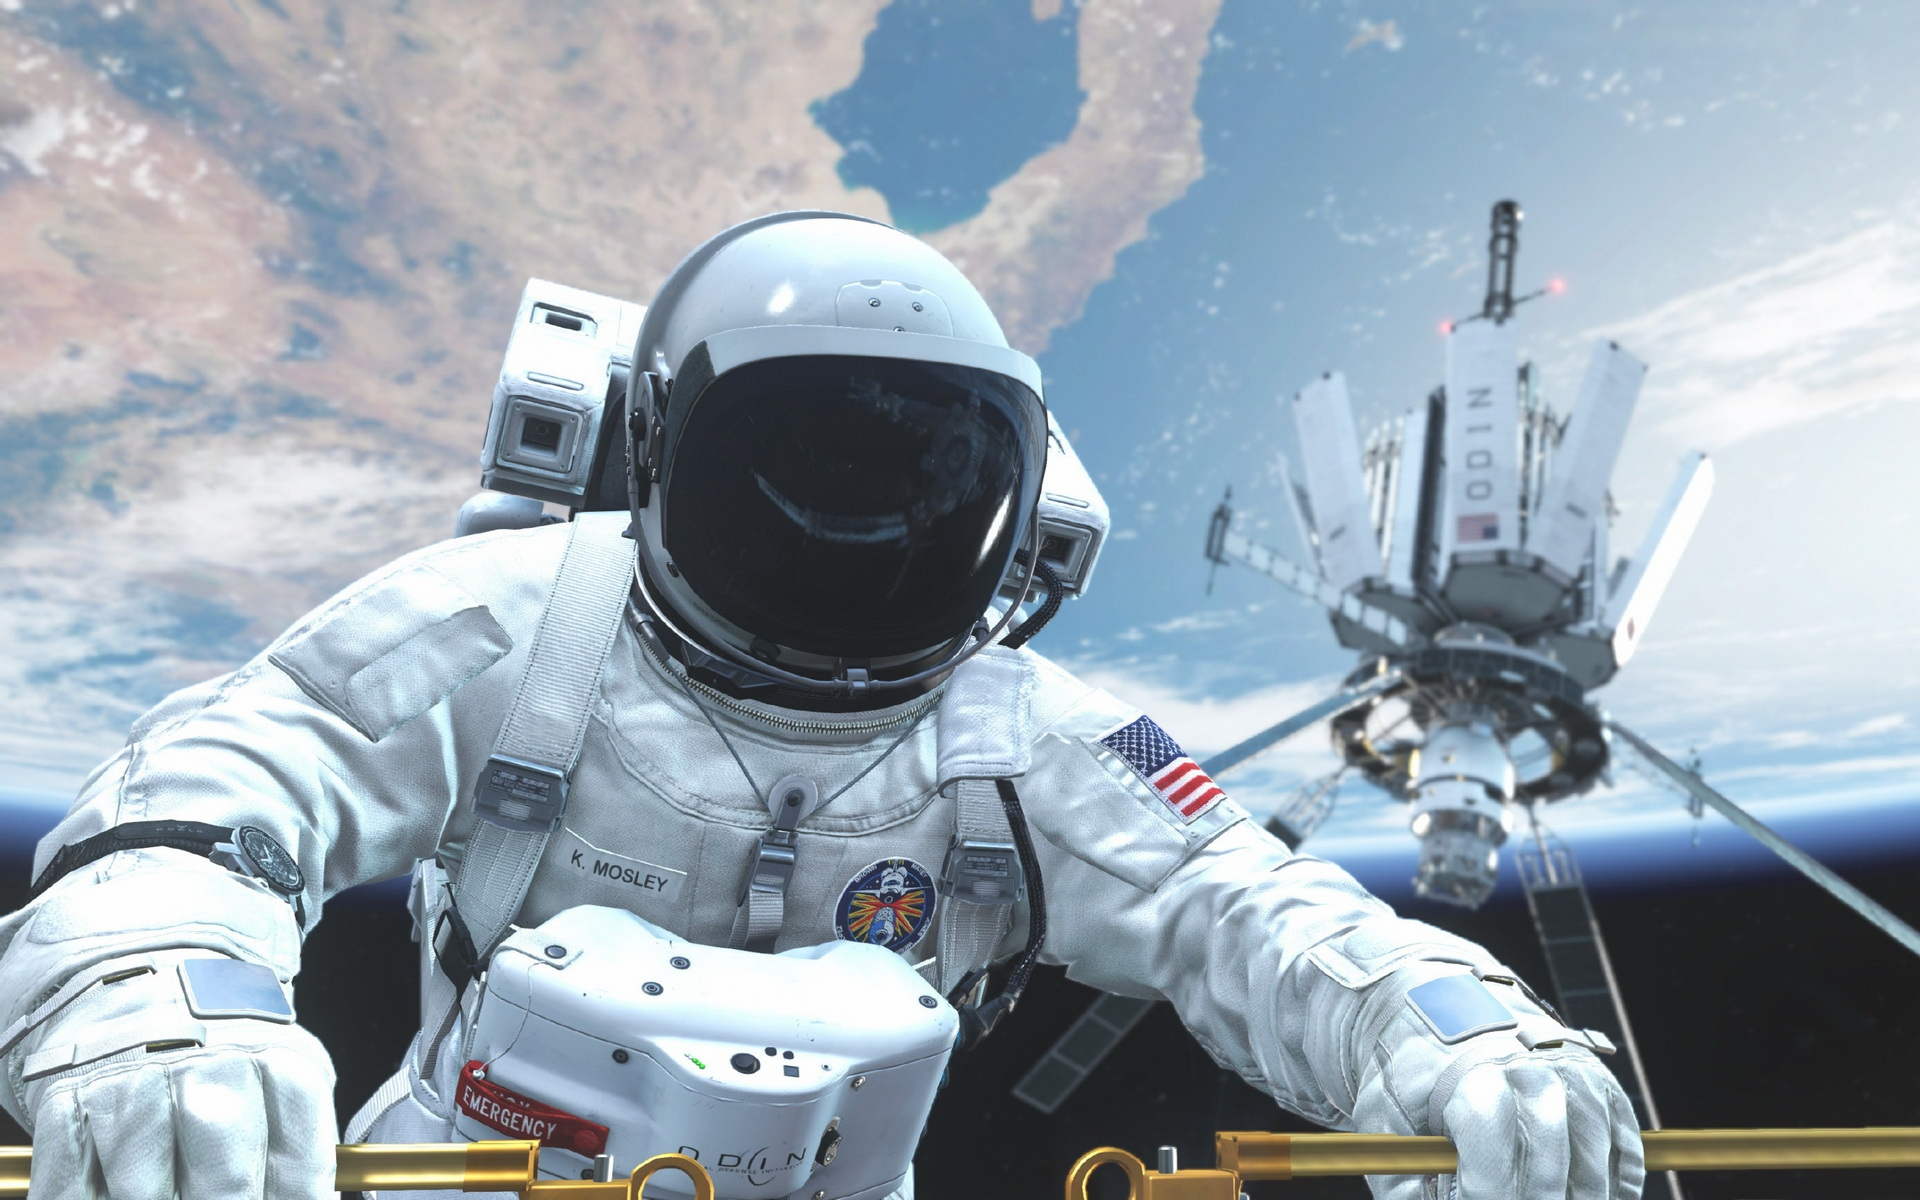 General 1920x1200 space astronaut Earth NASA Call of Duty Call of Duty: Ghosts video games Activision